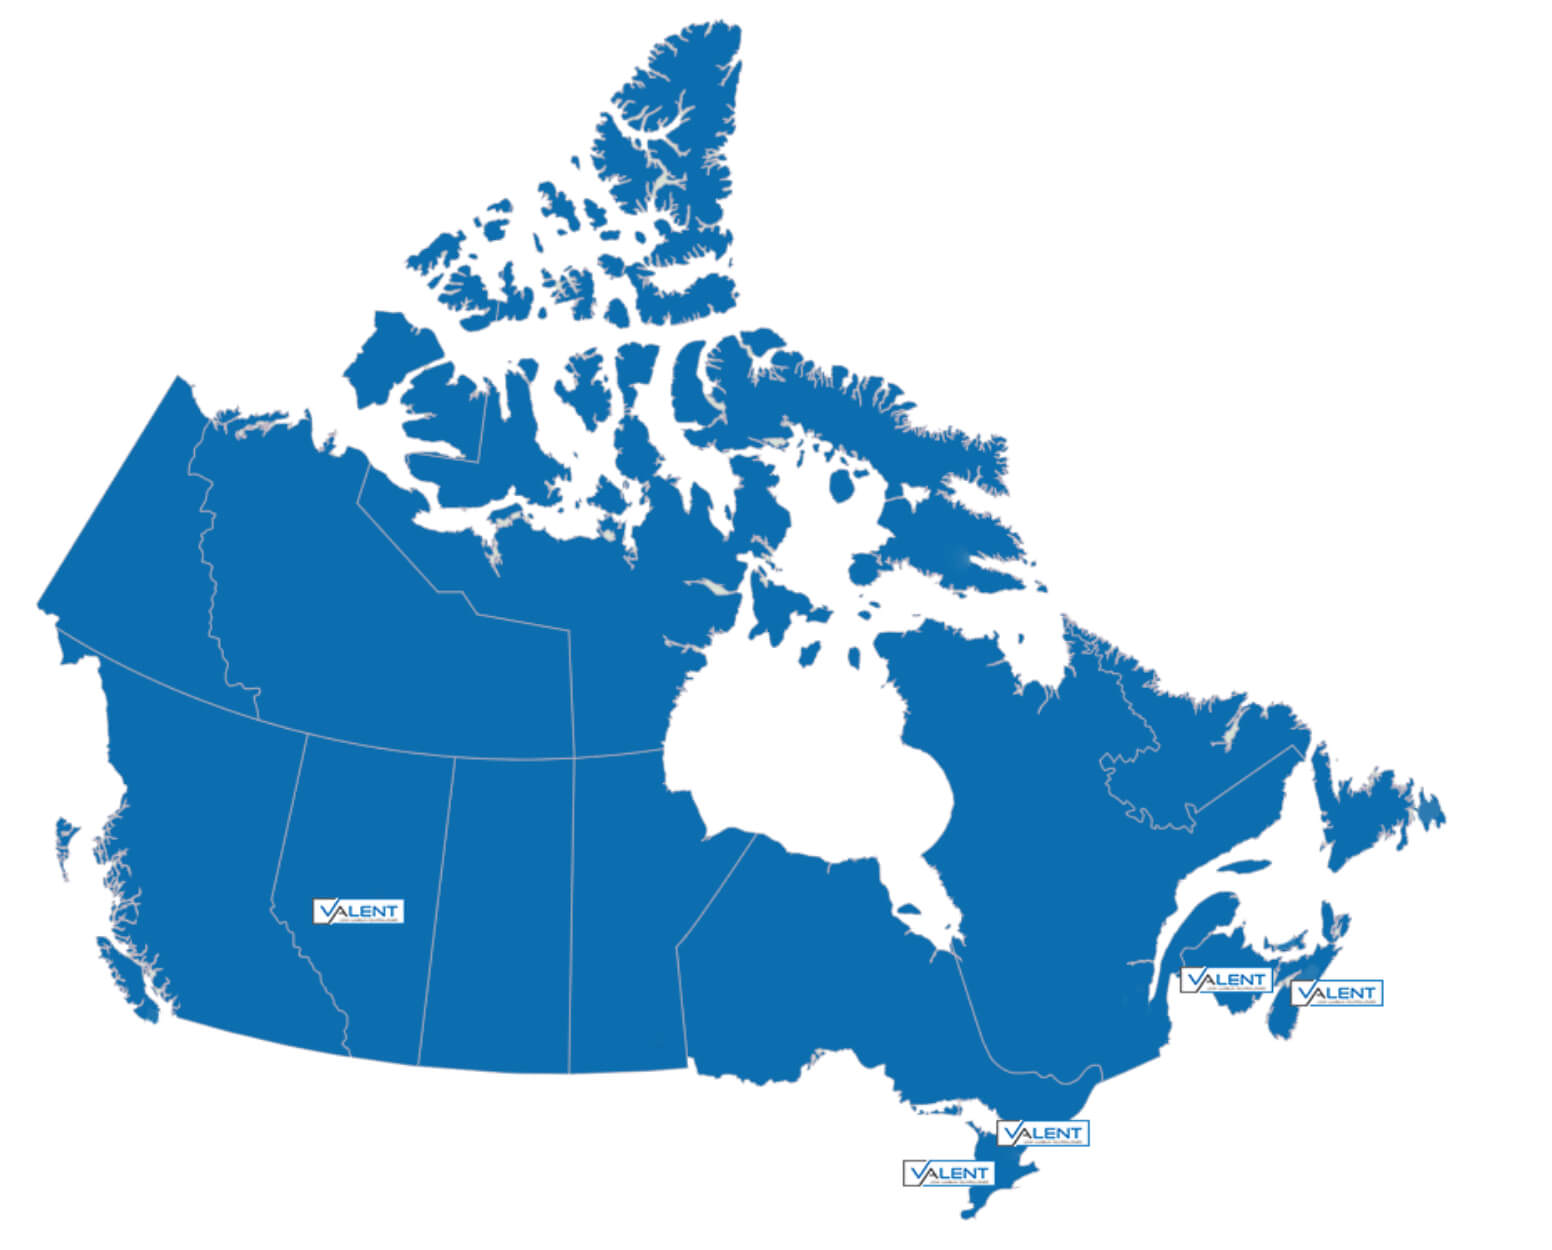 Valent-Map-Of-Canada@2x.jpg